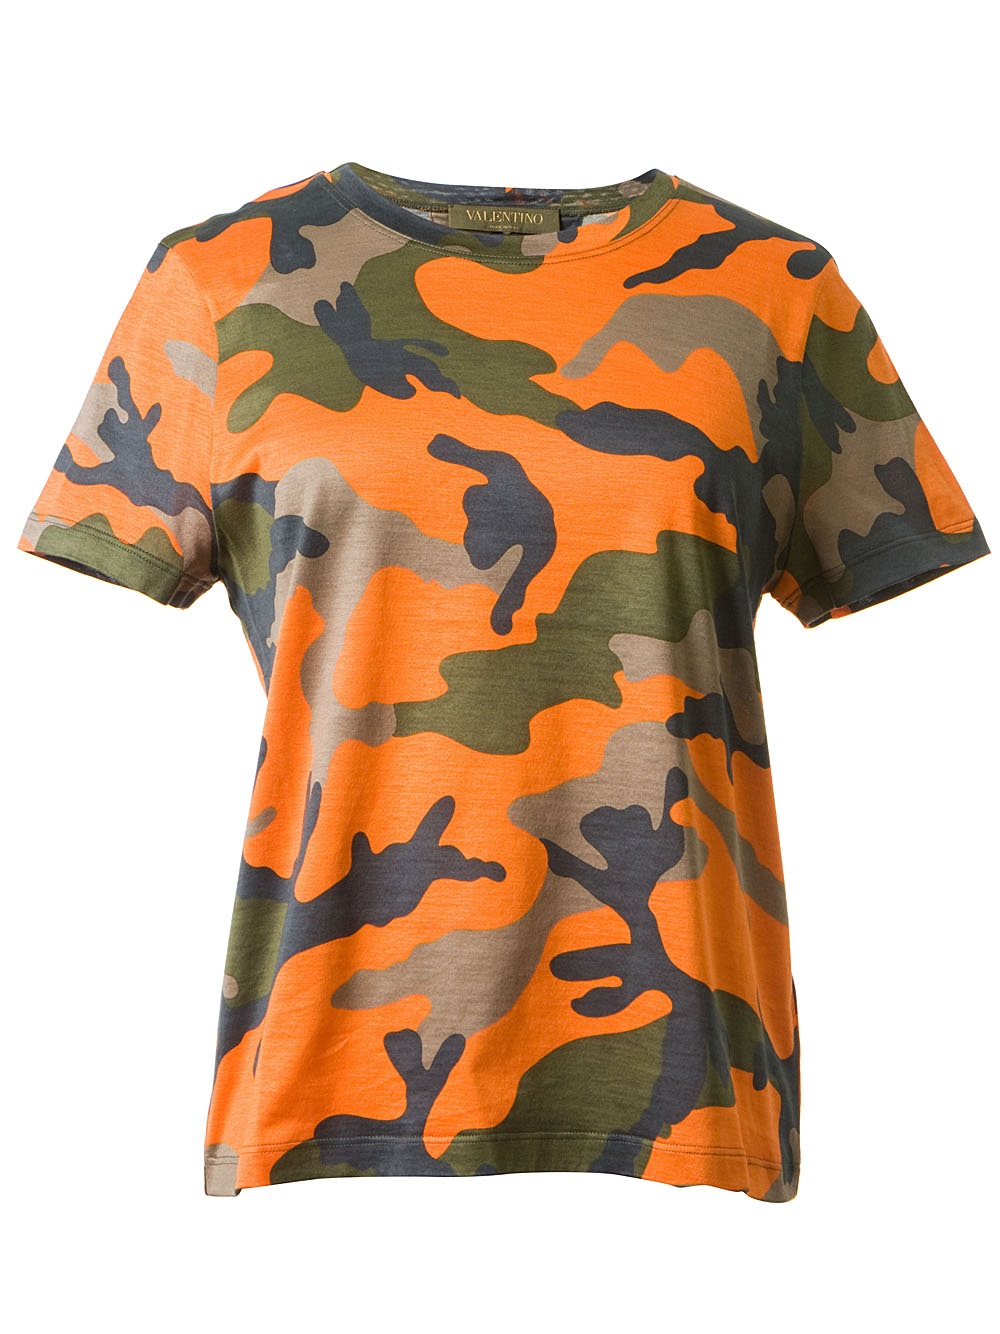 Lyst valentino camouflage print t shirt in orange for Where to print shirts